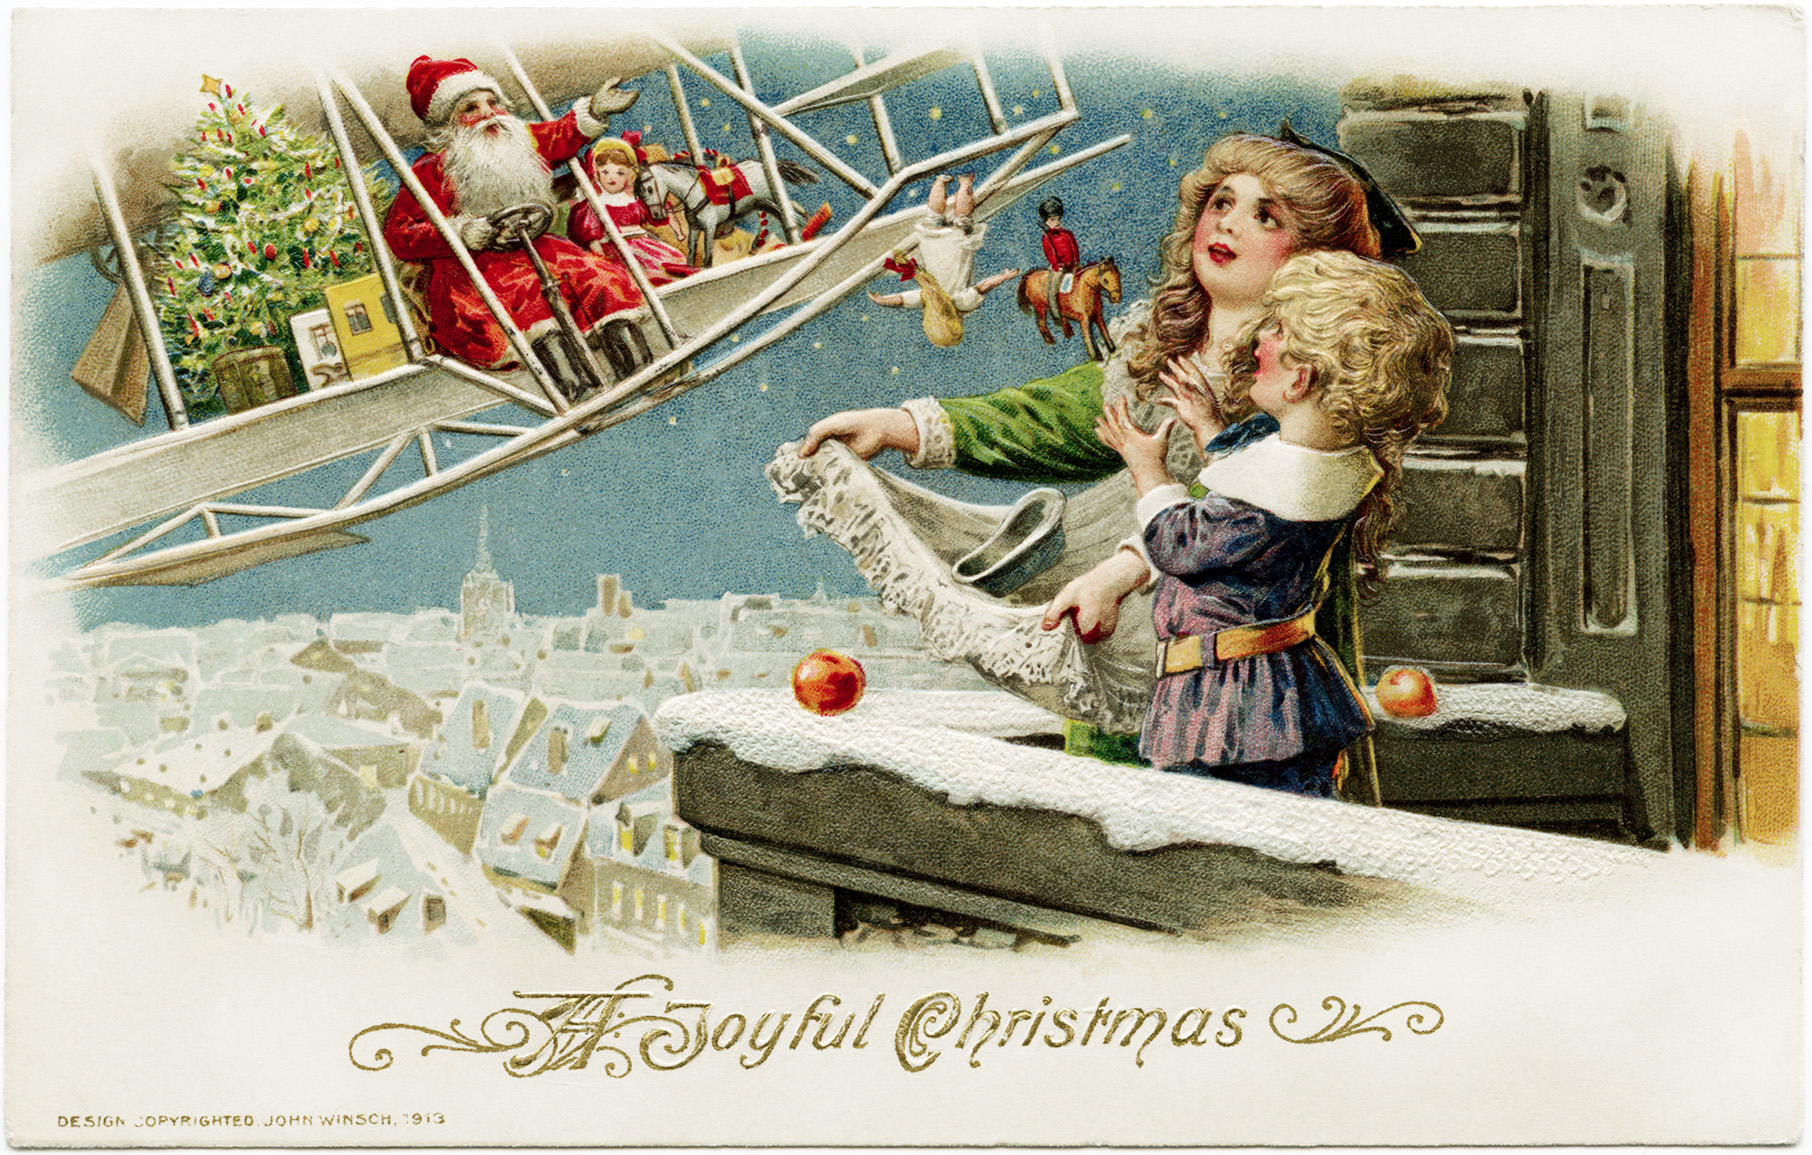 Gifts By Plane Santa Biplane Image Vintage Christmas Clipart Old